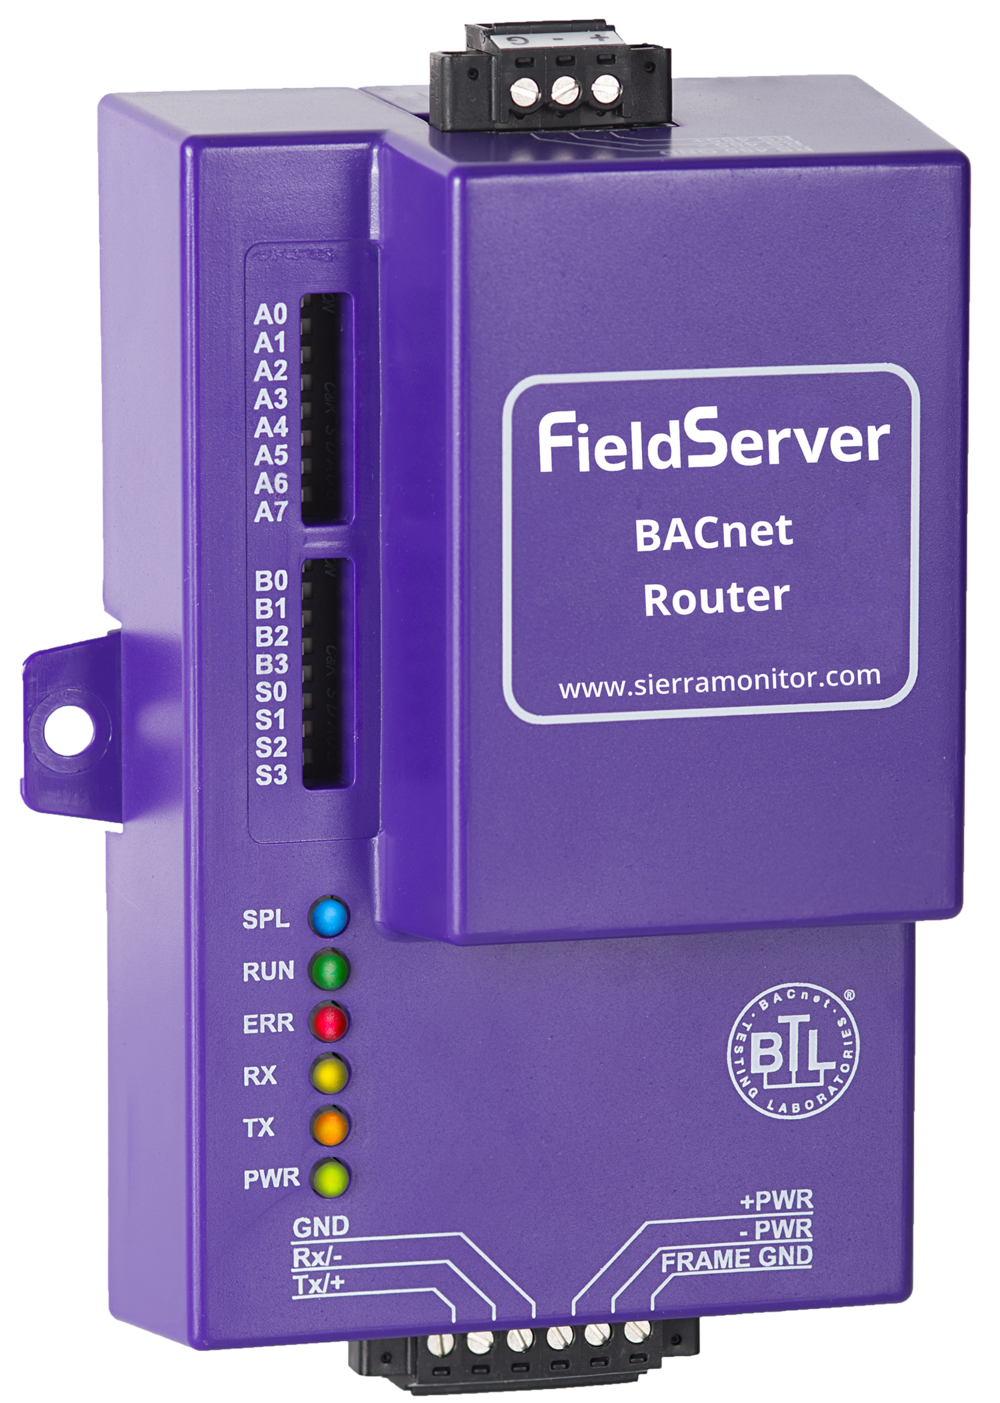 Sierra Monitor's BACnet Router (FS-ROUTER-BAC) product offers a complete BACnet internetworking solution for BACnet/IP, BACnet Ethernet, and BACnet MS/TP networks, while also providing a secure connection to the cloud.